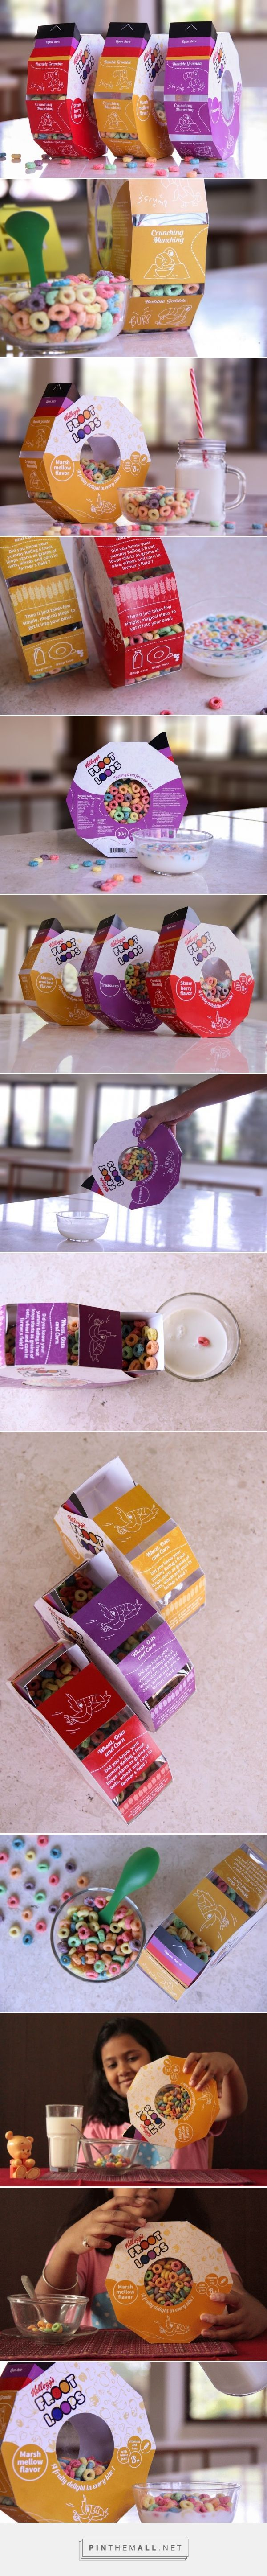 Frootloops ‪‎cereal‬ ‪‎packaging‬ designed by ‪student‬ Prachi Deshingkar, Shikha Kanakia (‪India‬) - http://www.packagingoftheworld.com/2016/03/frootloops-student-project.html